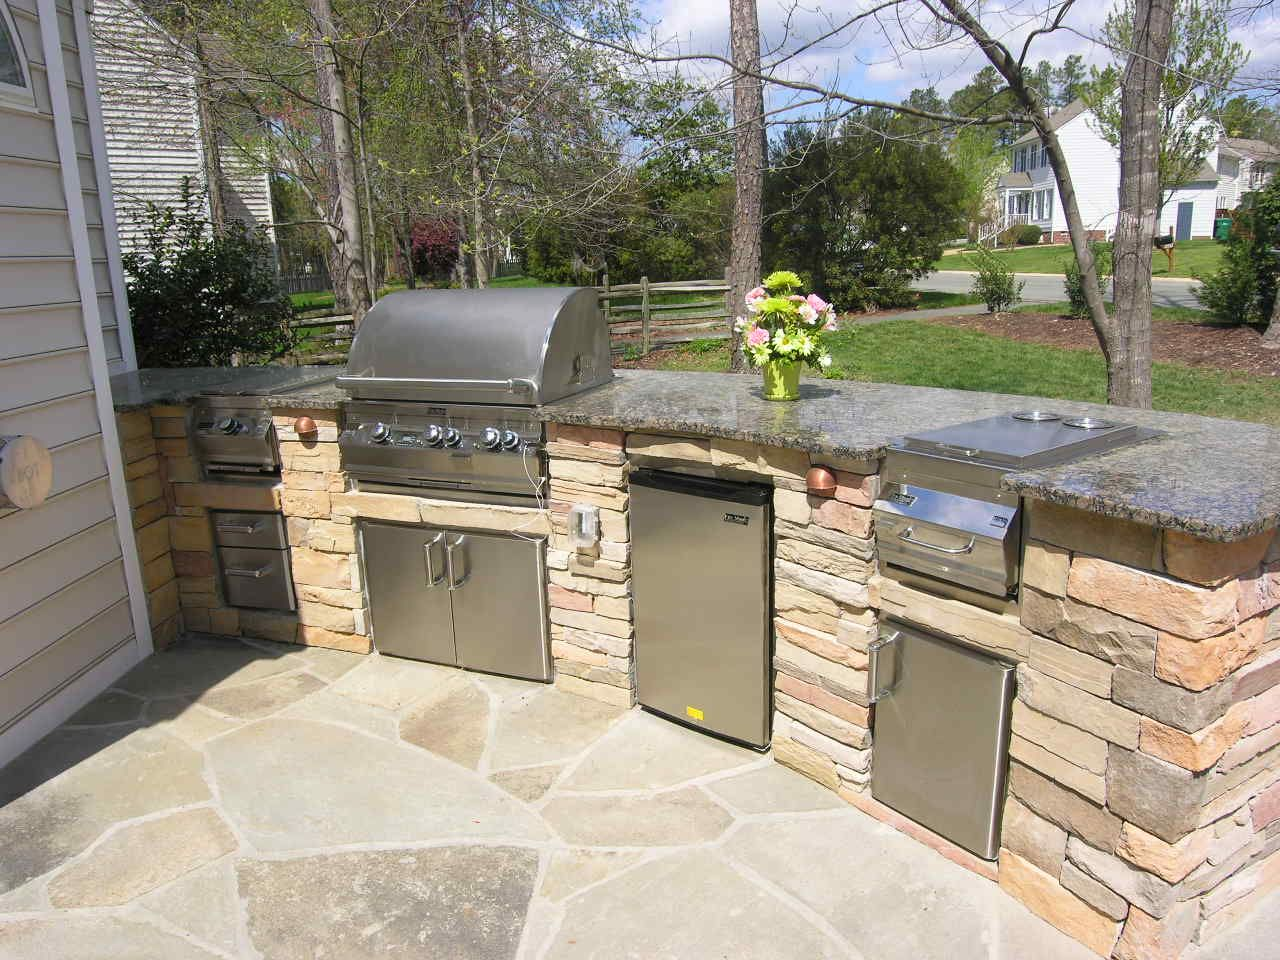 outdoor kitchen ideas backyard patio with kitchen ideas This custom outdoor kitchen design has space for several outdoor